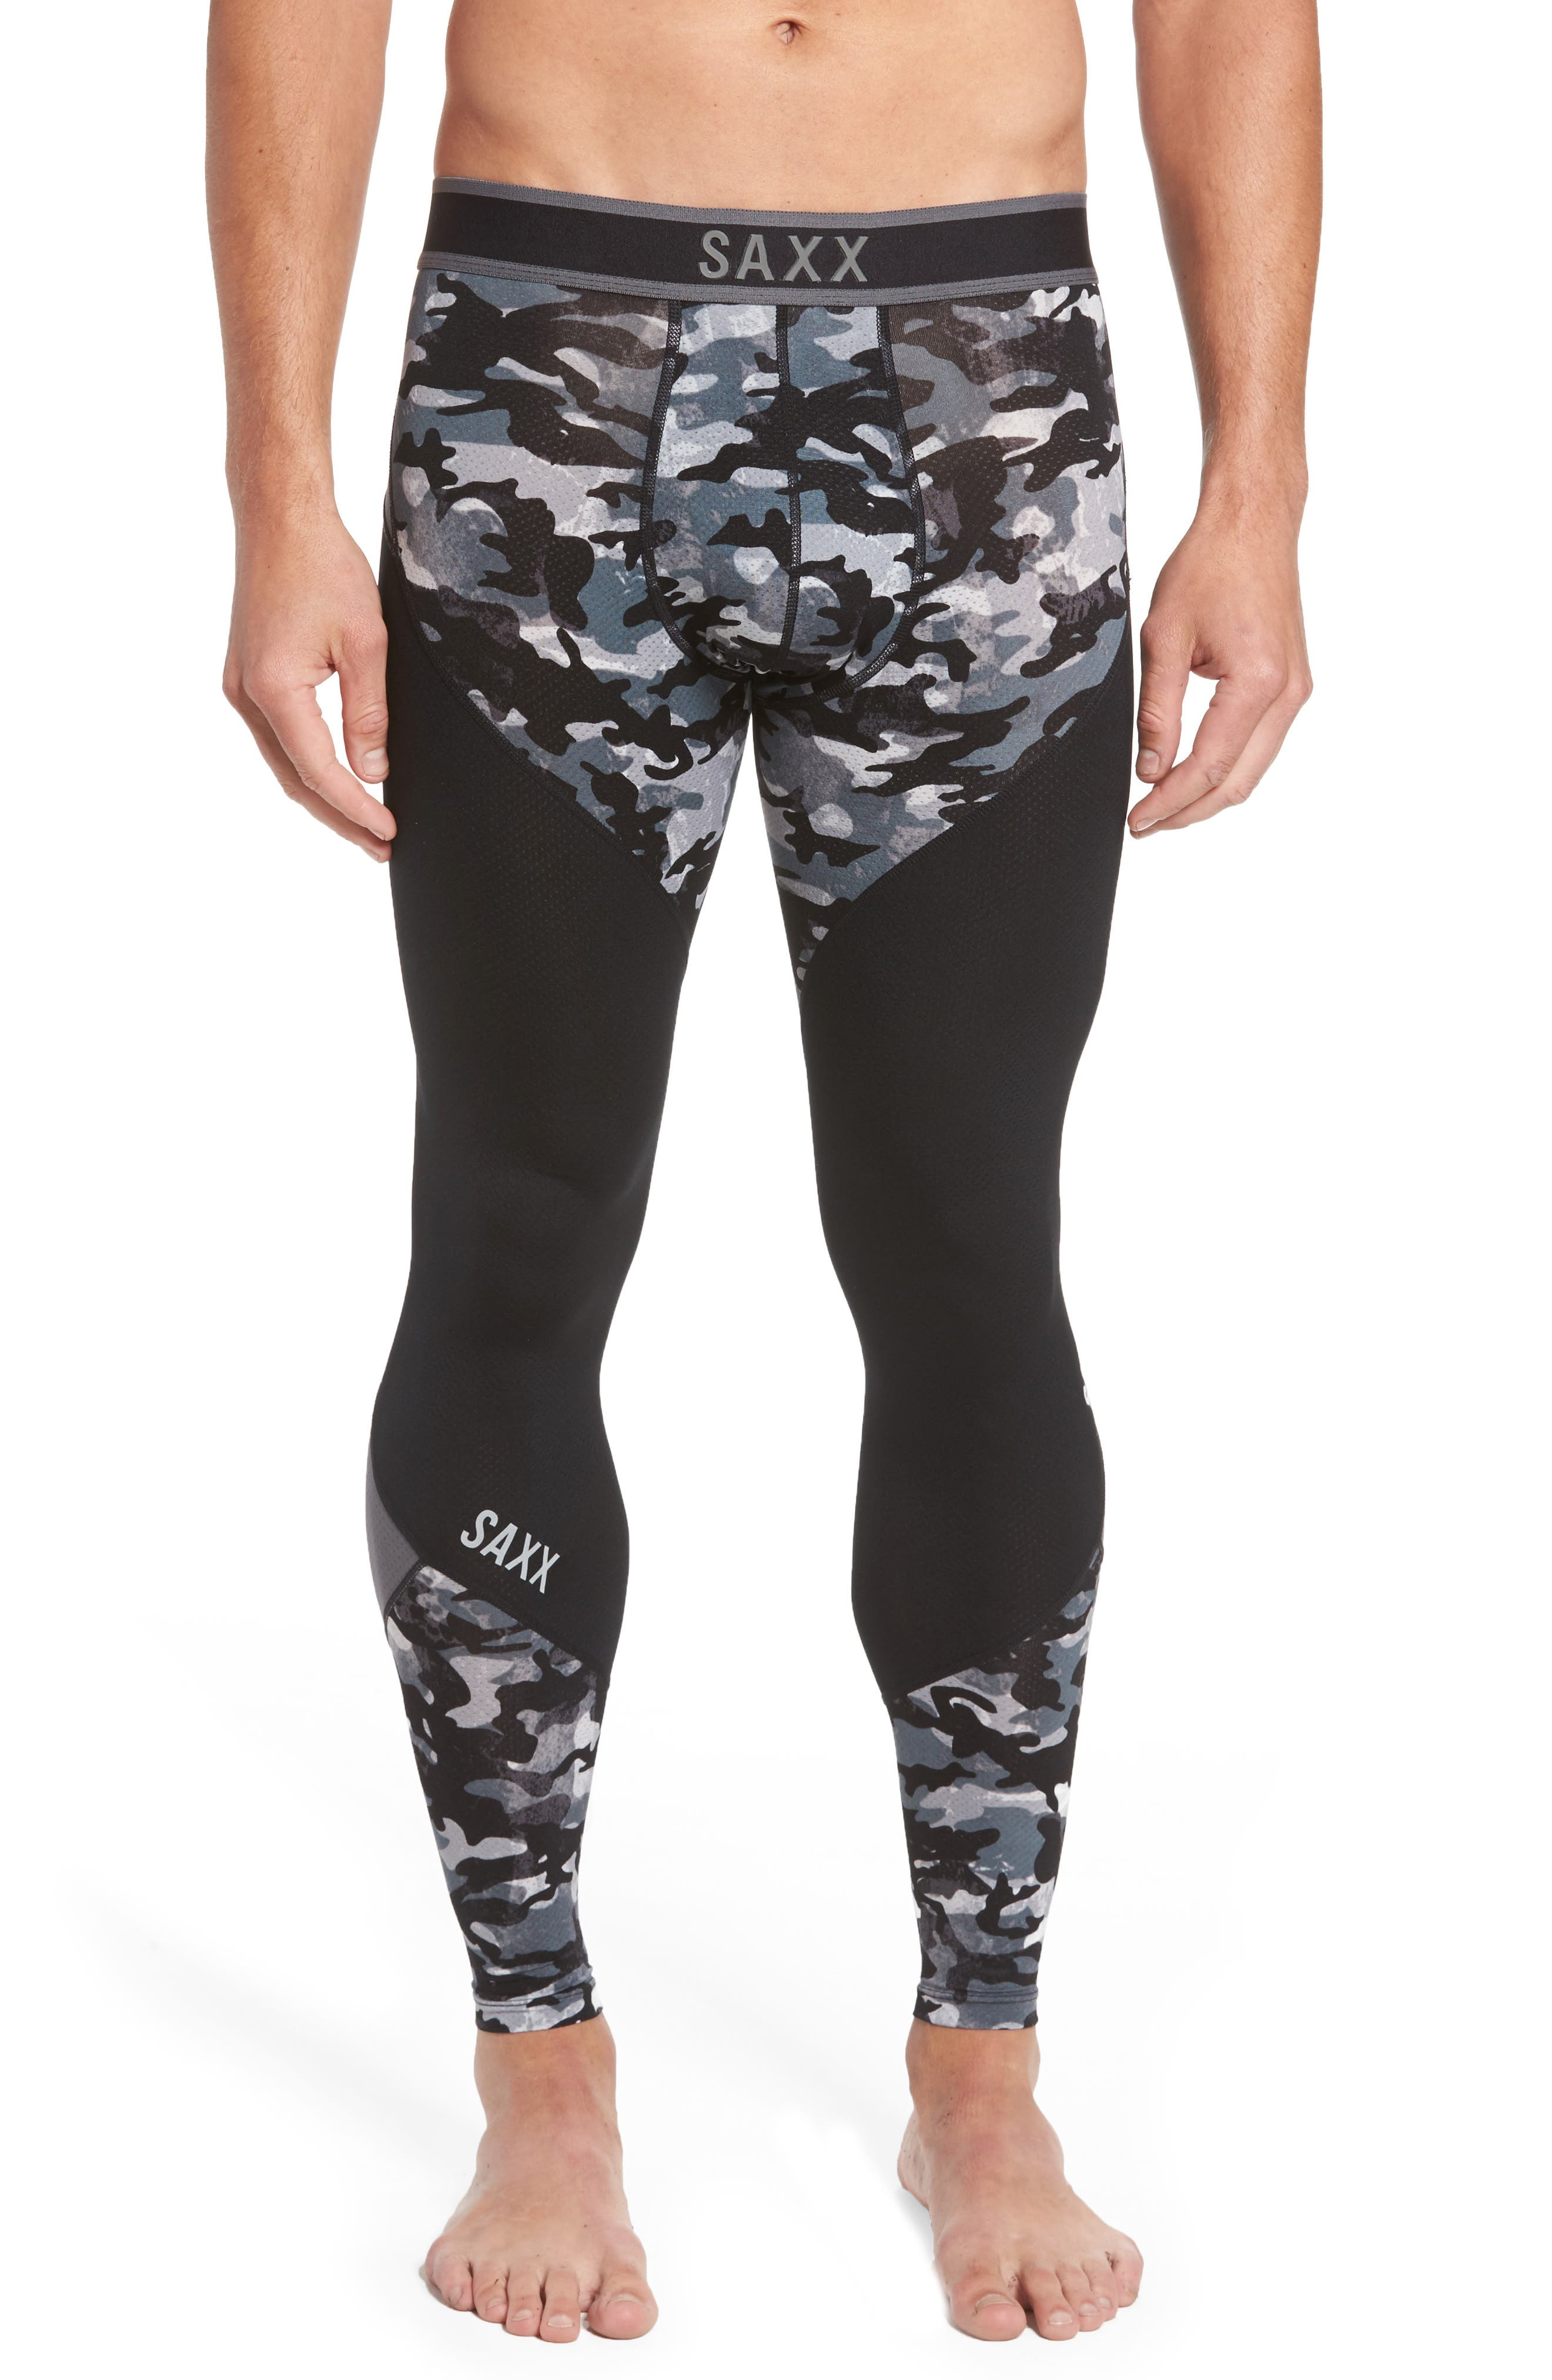 SAXX Kinetic Camo Colorblock Athletic Tights